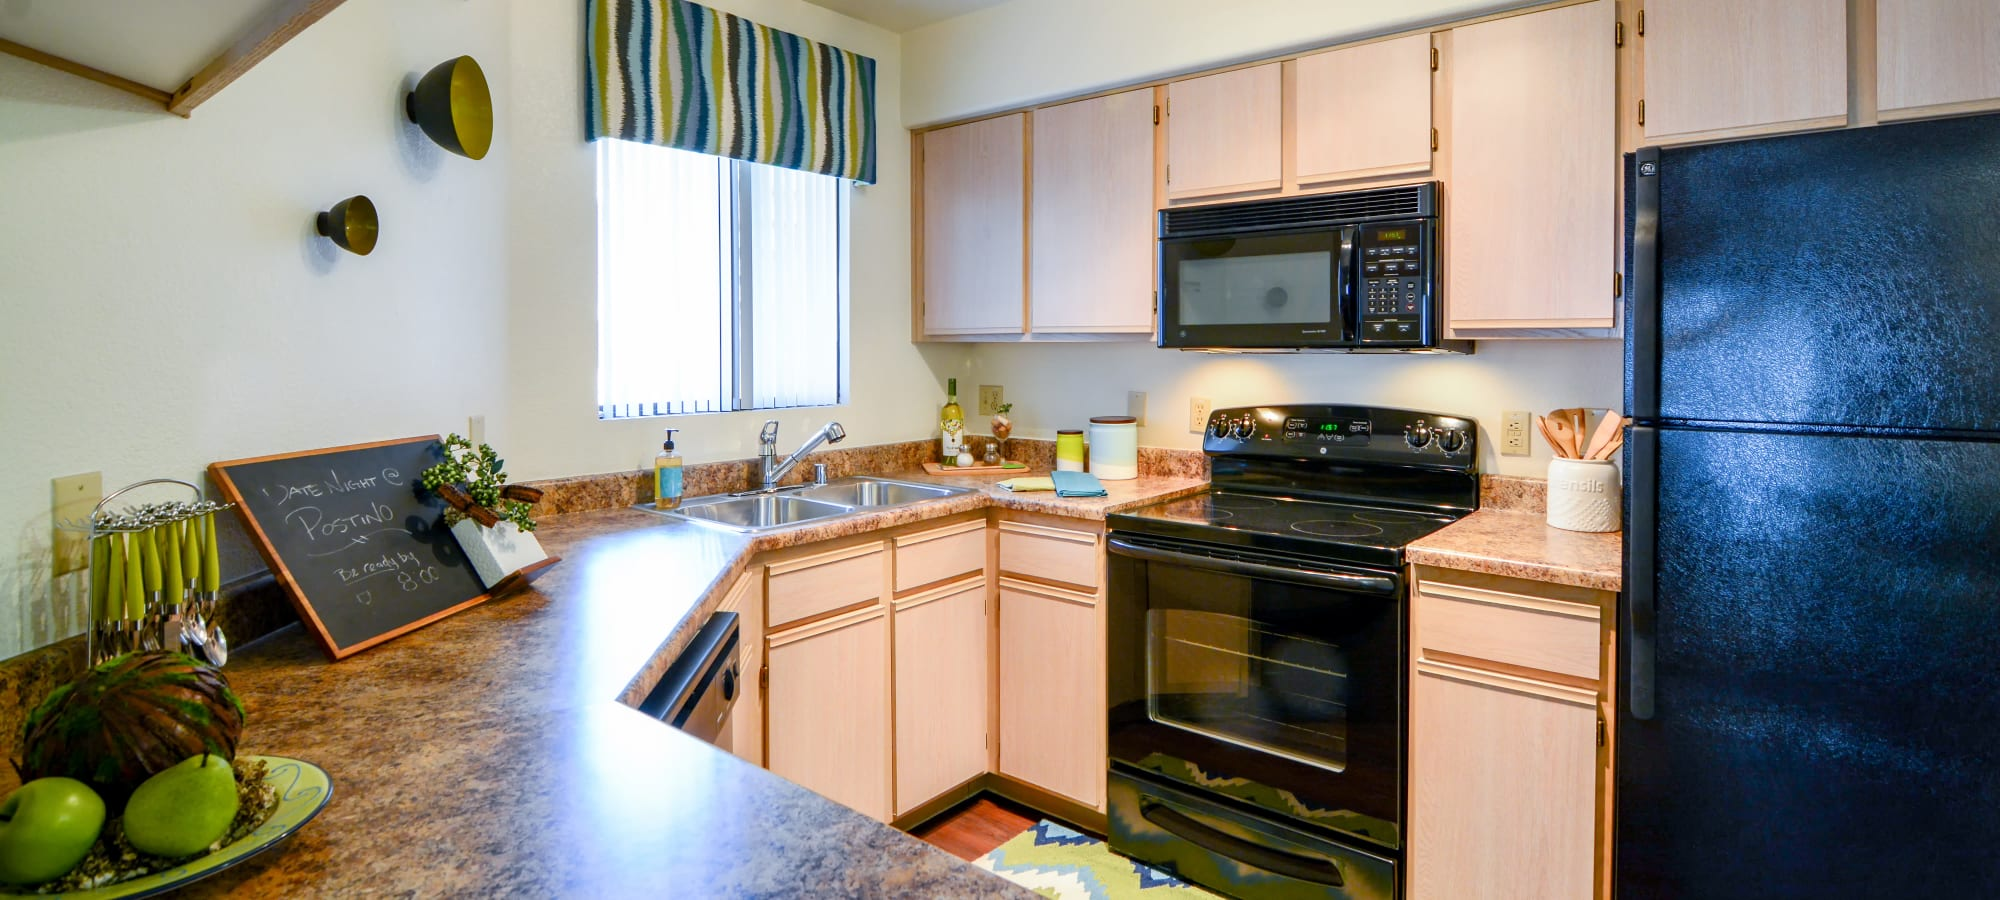 Bright kitchen at The Palms on Scottsdale in Tempe, Arizona